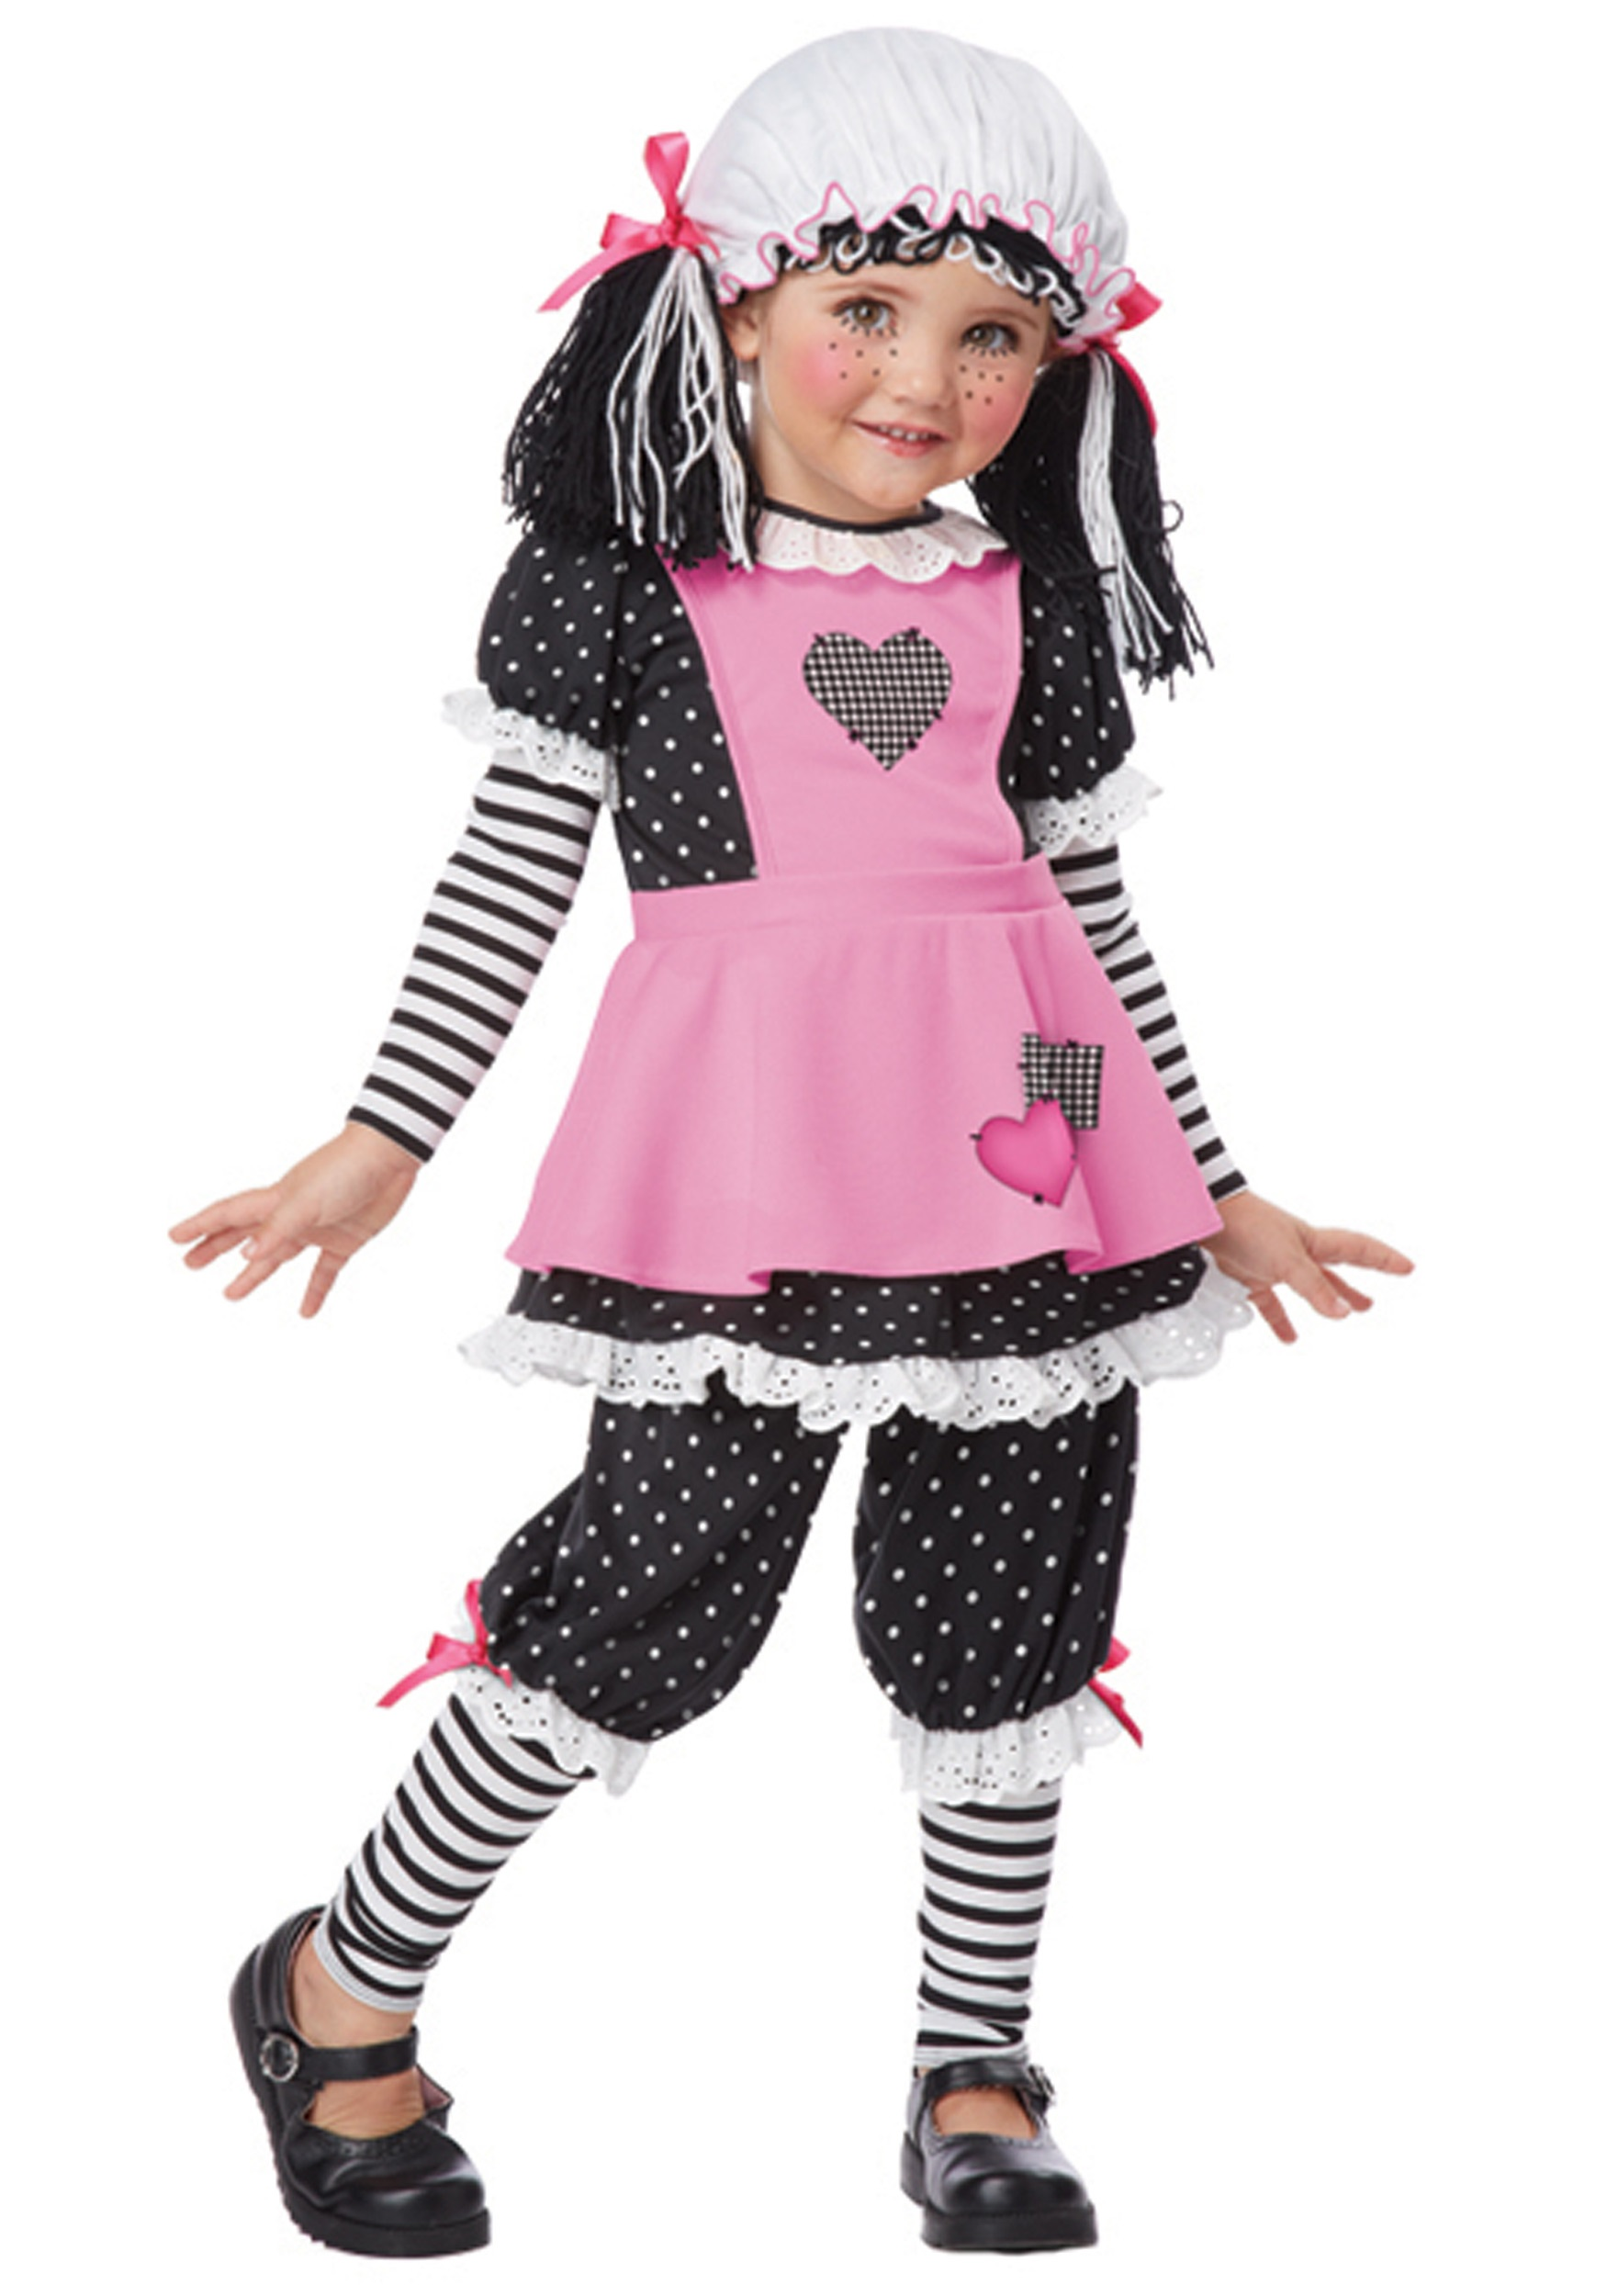 Toddler Rag Dolly Costume  sc 1 st  Halloween Costumes & Toddler Rag Dolly Costume - Halloween Costumes